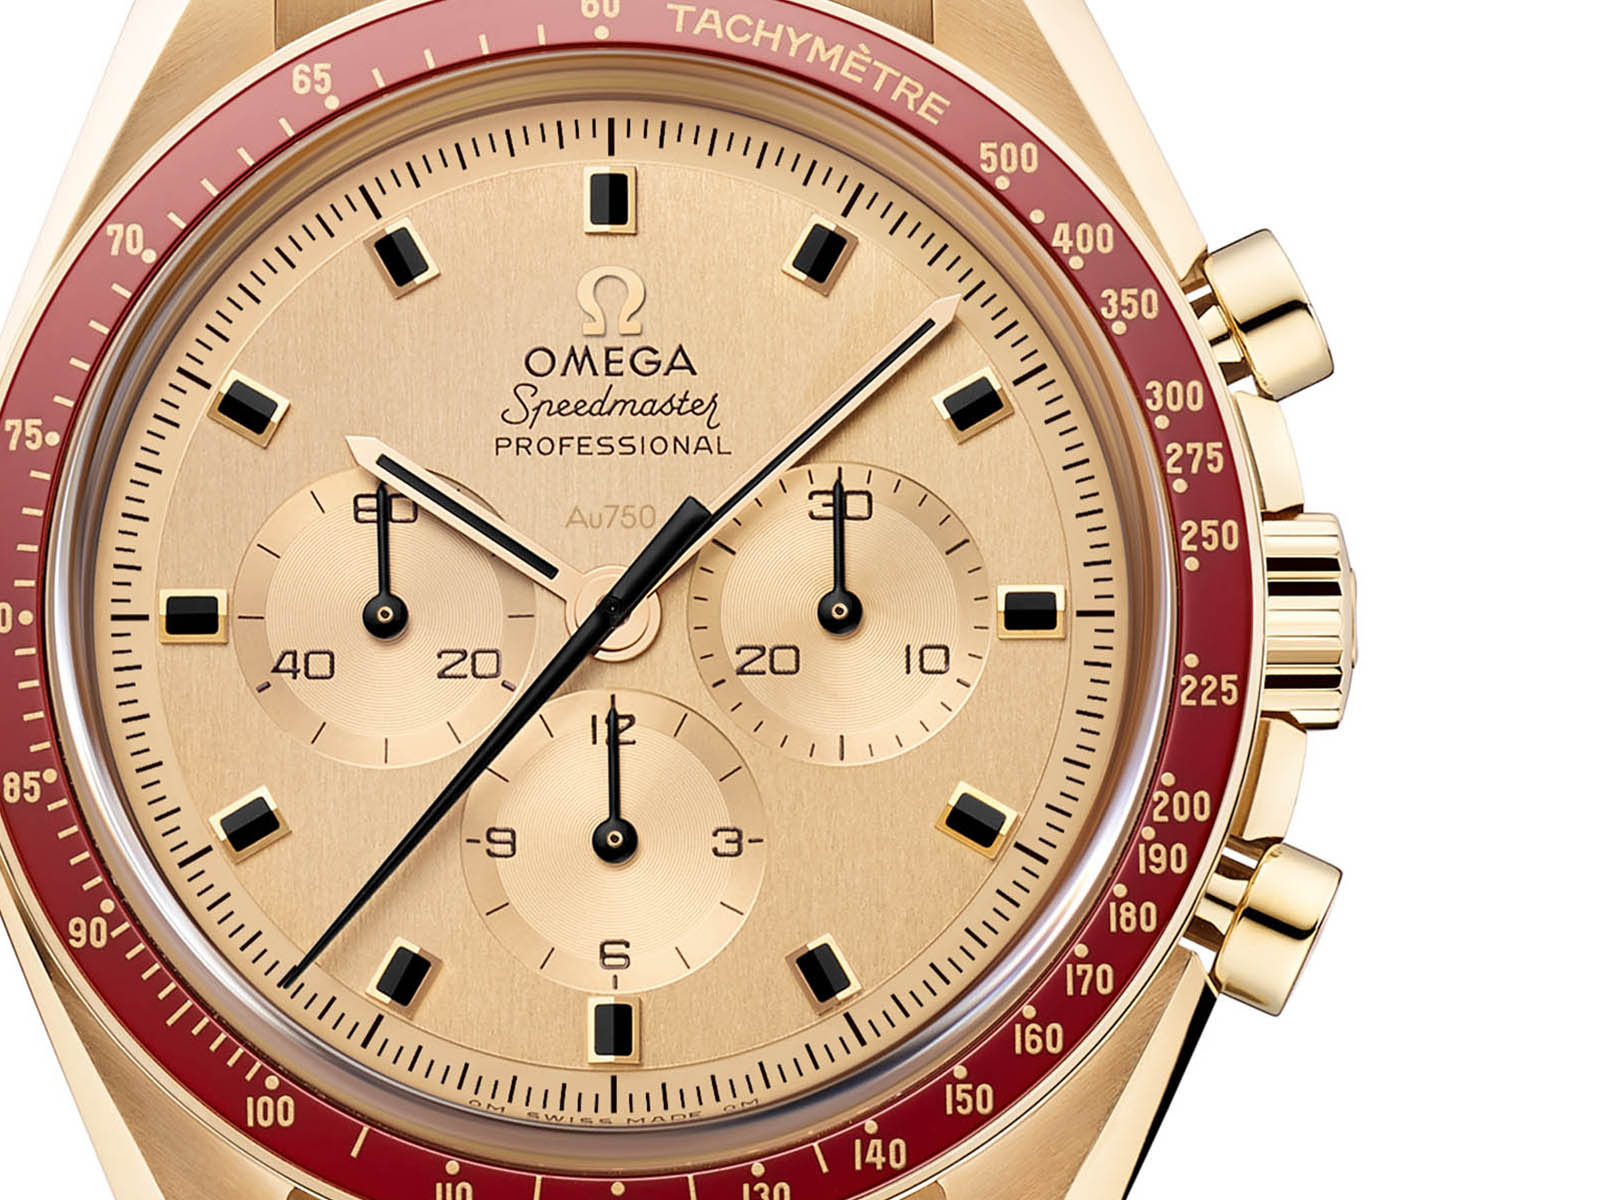 310-60-42-50-99-001-omega-speedmaster-apollo-11-50th-anniversary-5.jpg